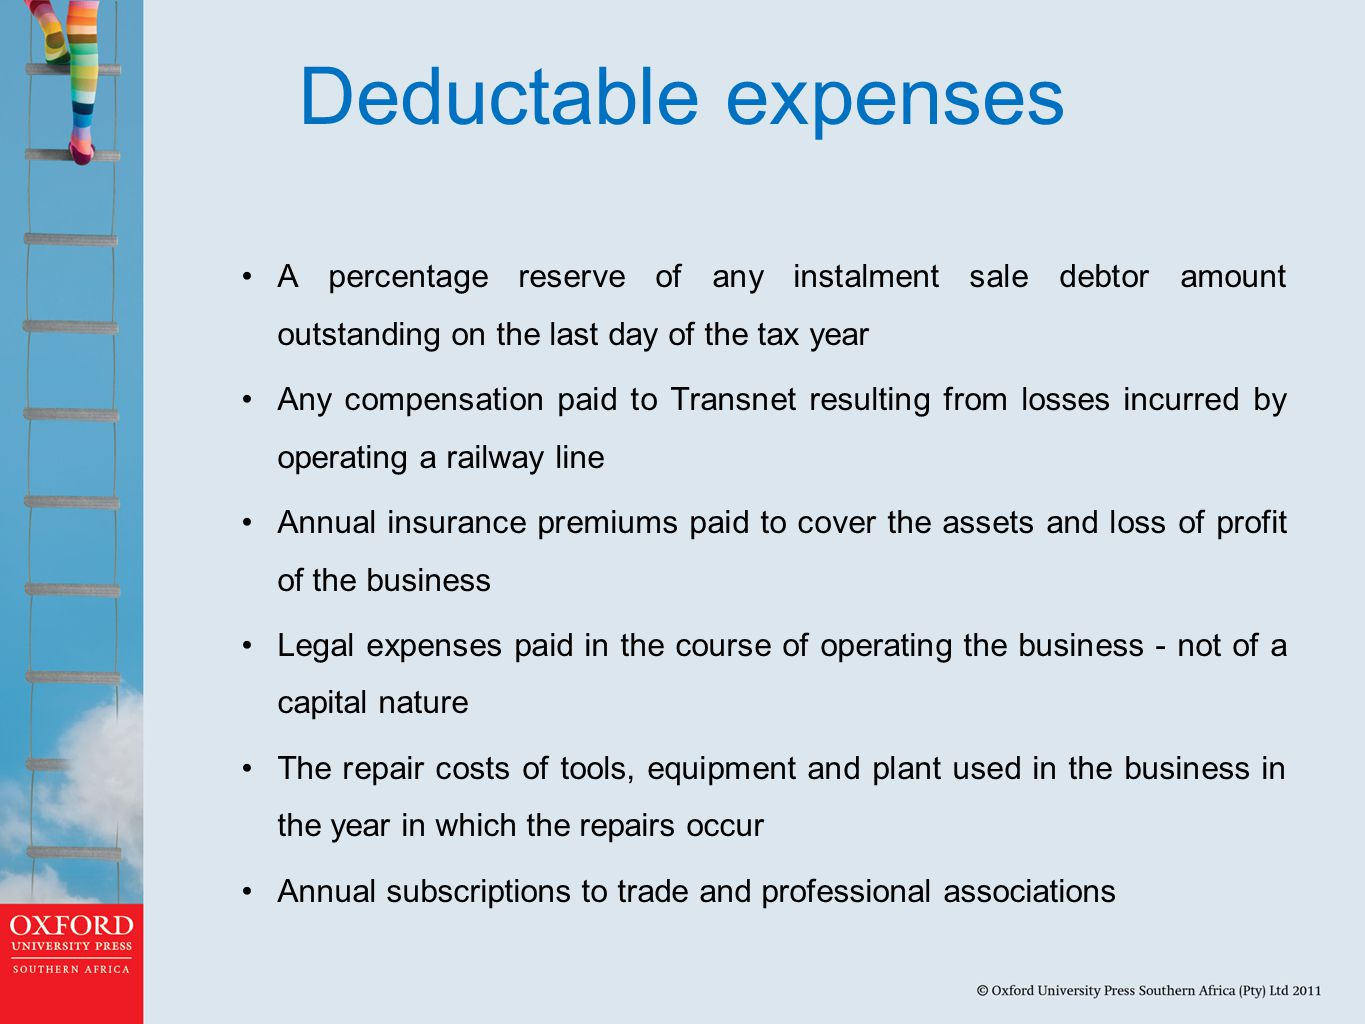 Deductable expenses A percentage reserve of any instalment sale debtor amount outstanding on the last day of the tax year.